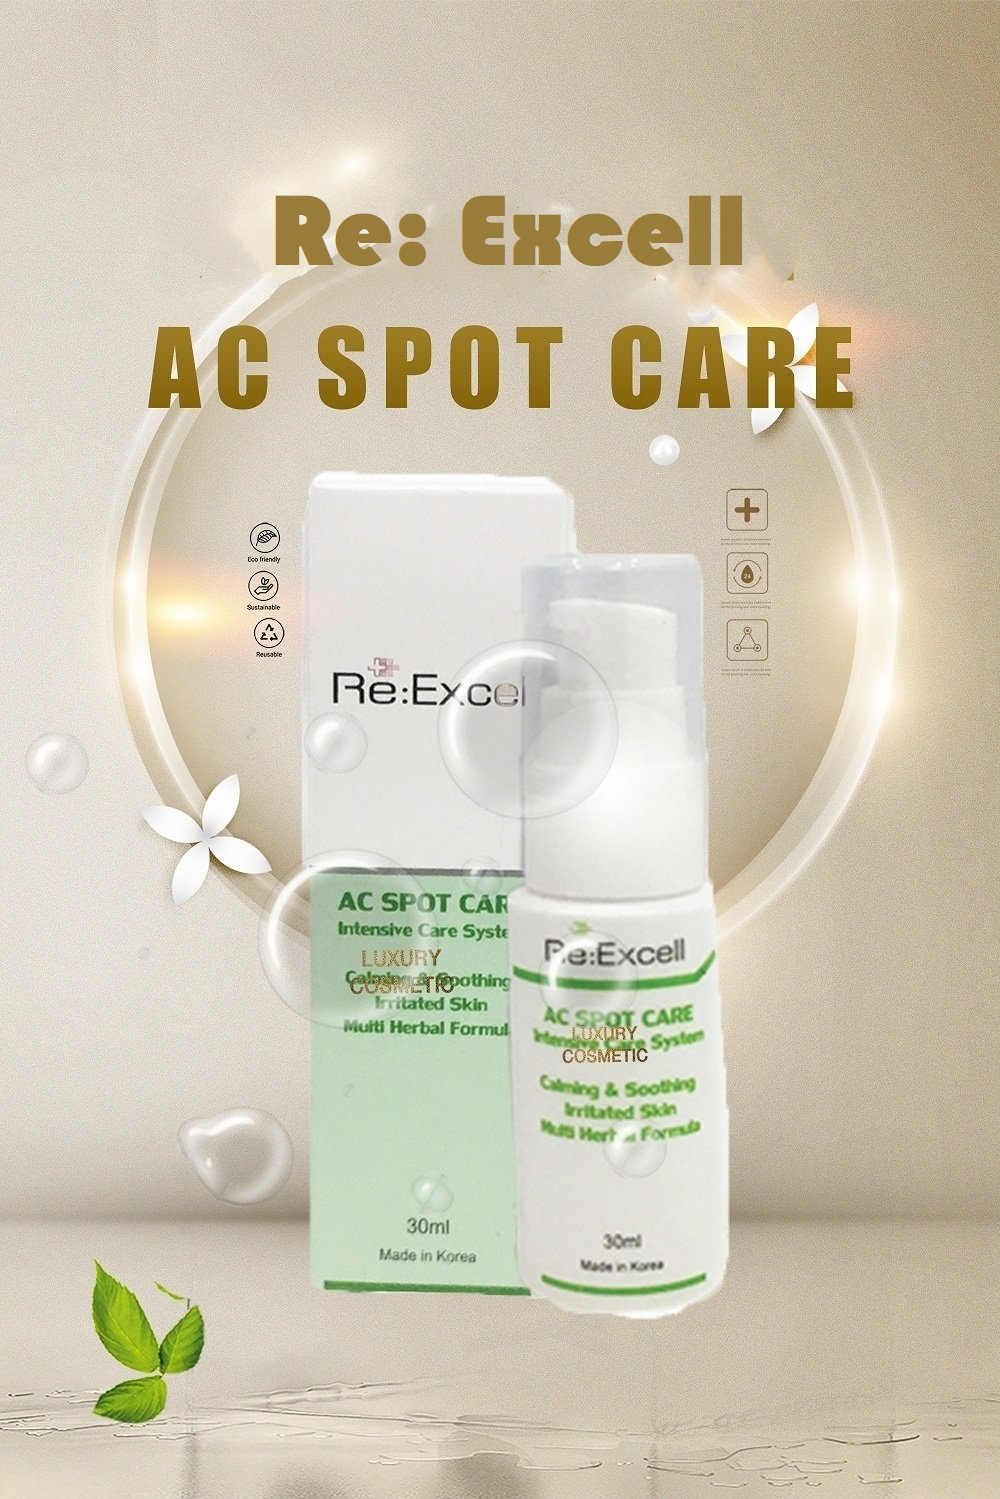 Combo 5 hộp Gel mụn Re:Excell AC Spot Care Hàn Quốc